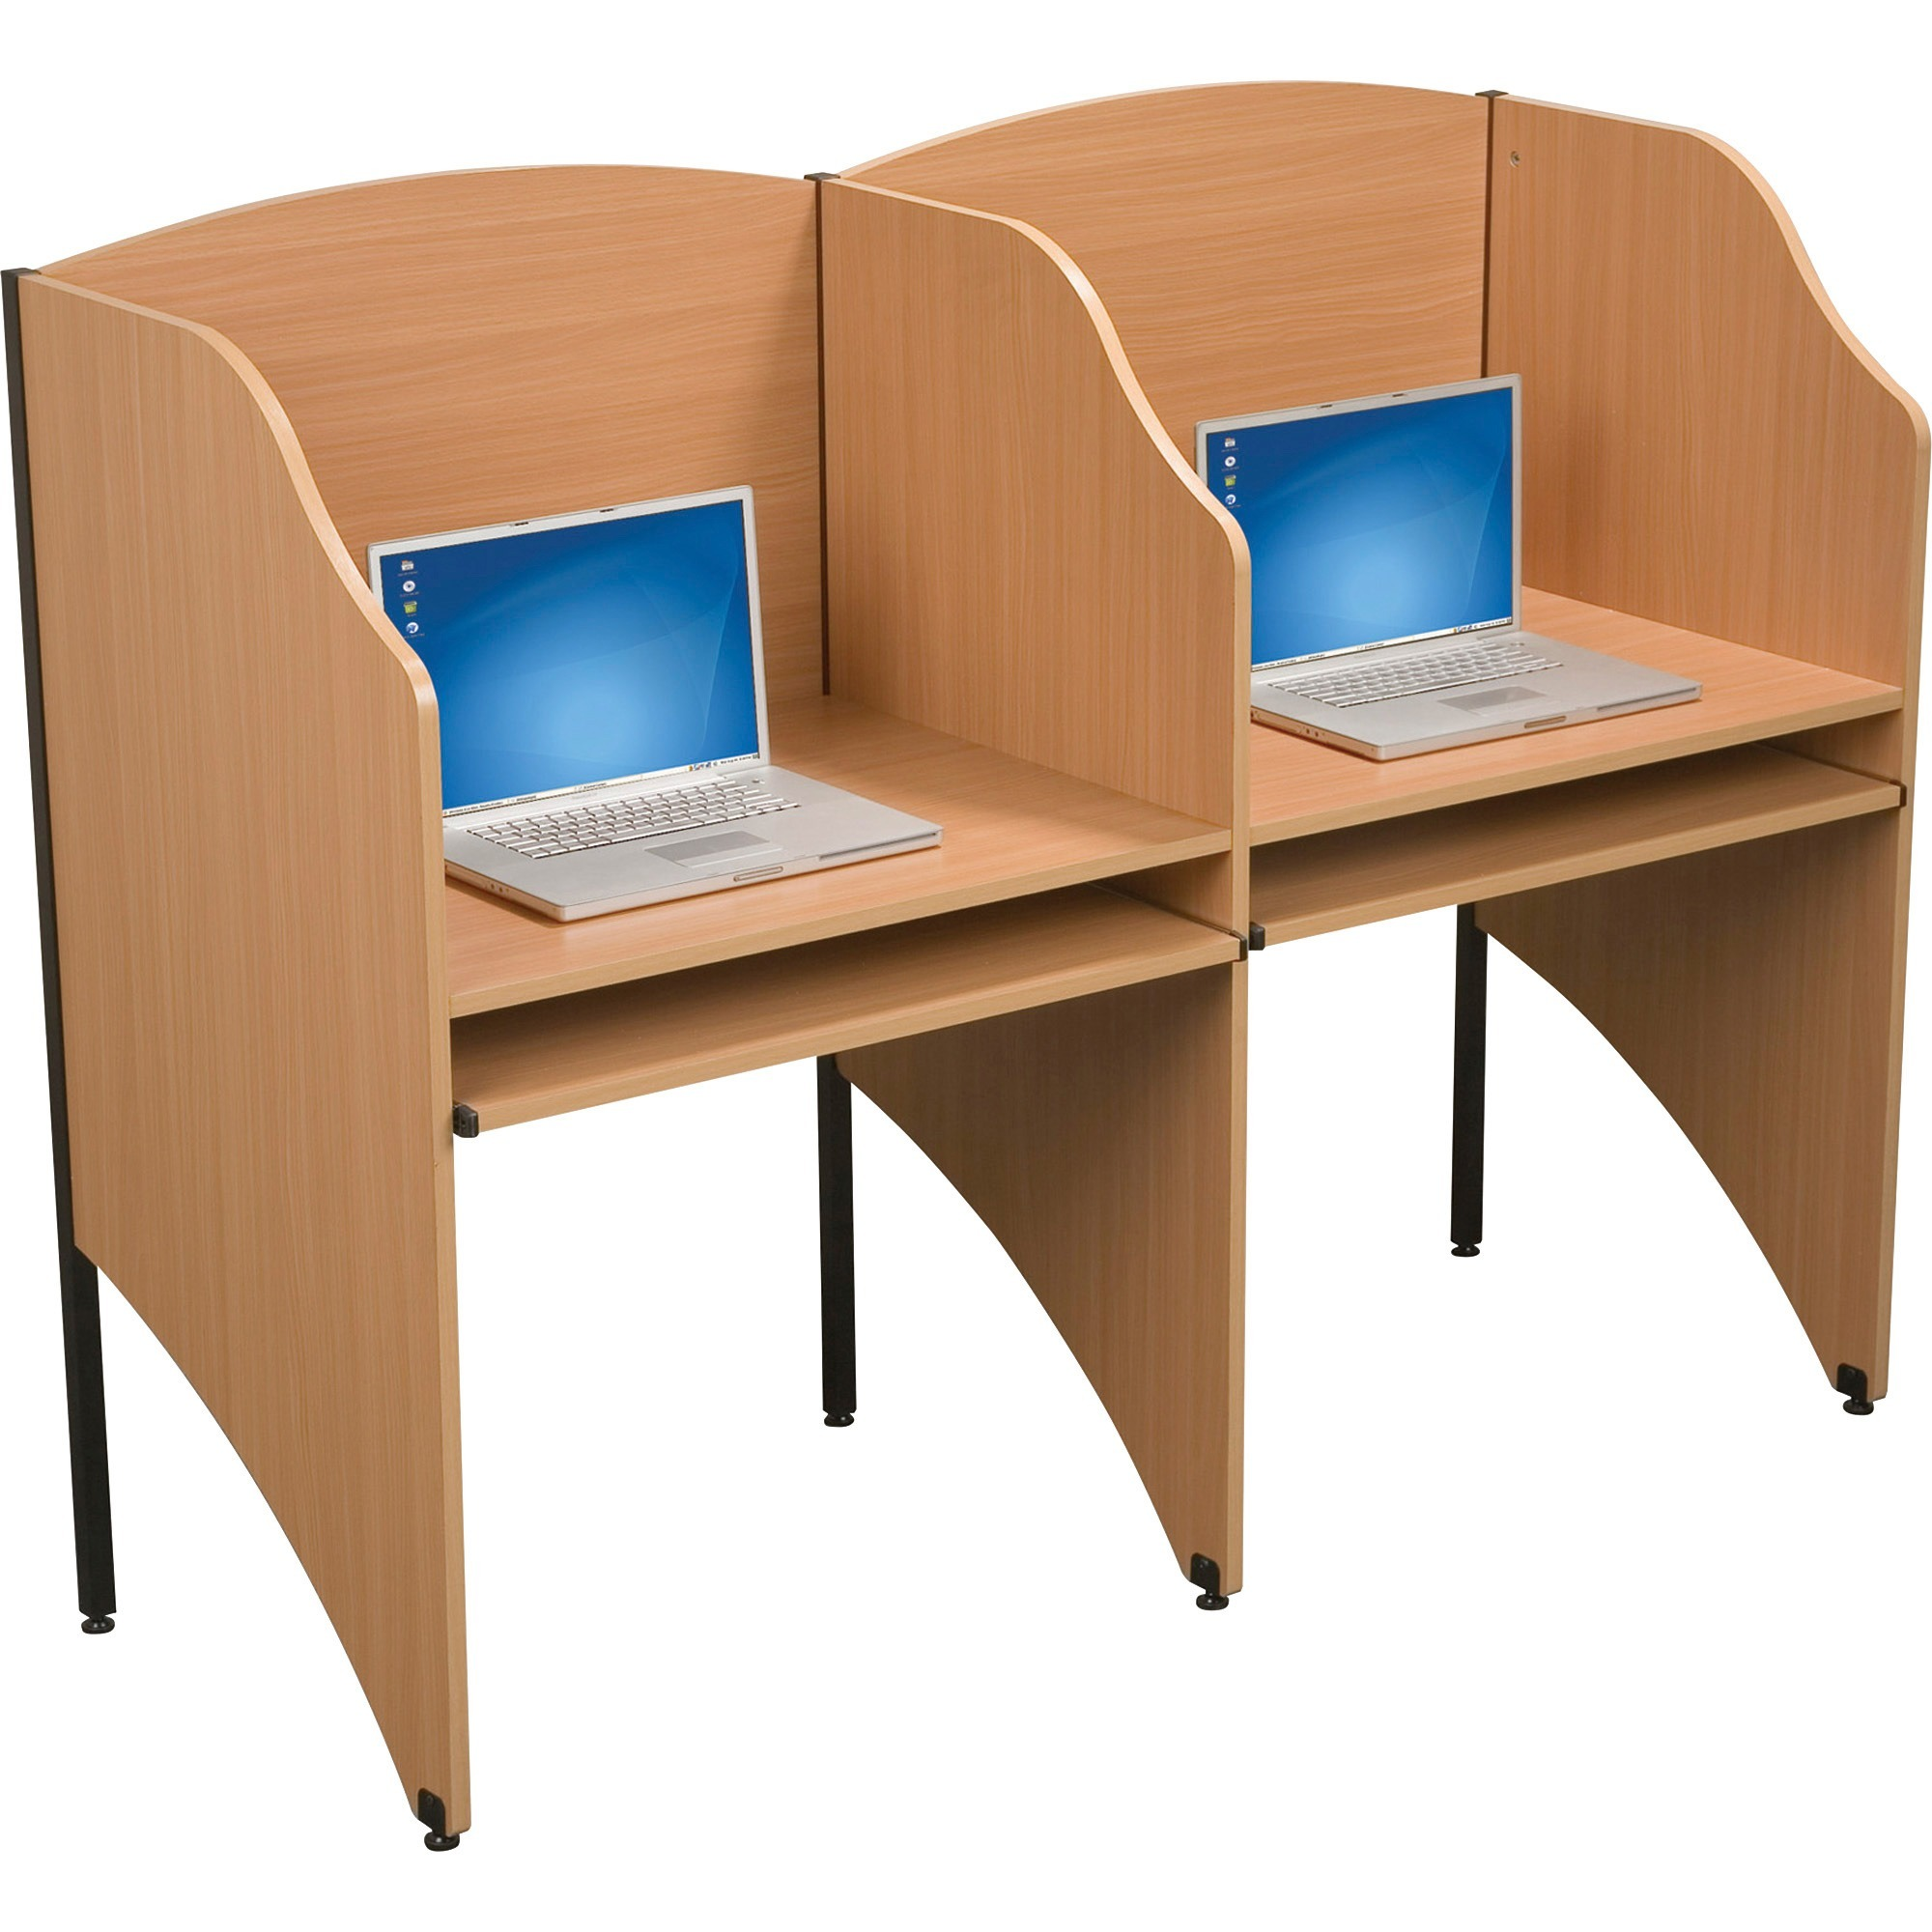 BALT Add-A-Carrel, Laminate, 32-3/4w x 24-1/2d x 48h, Teak